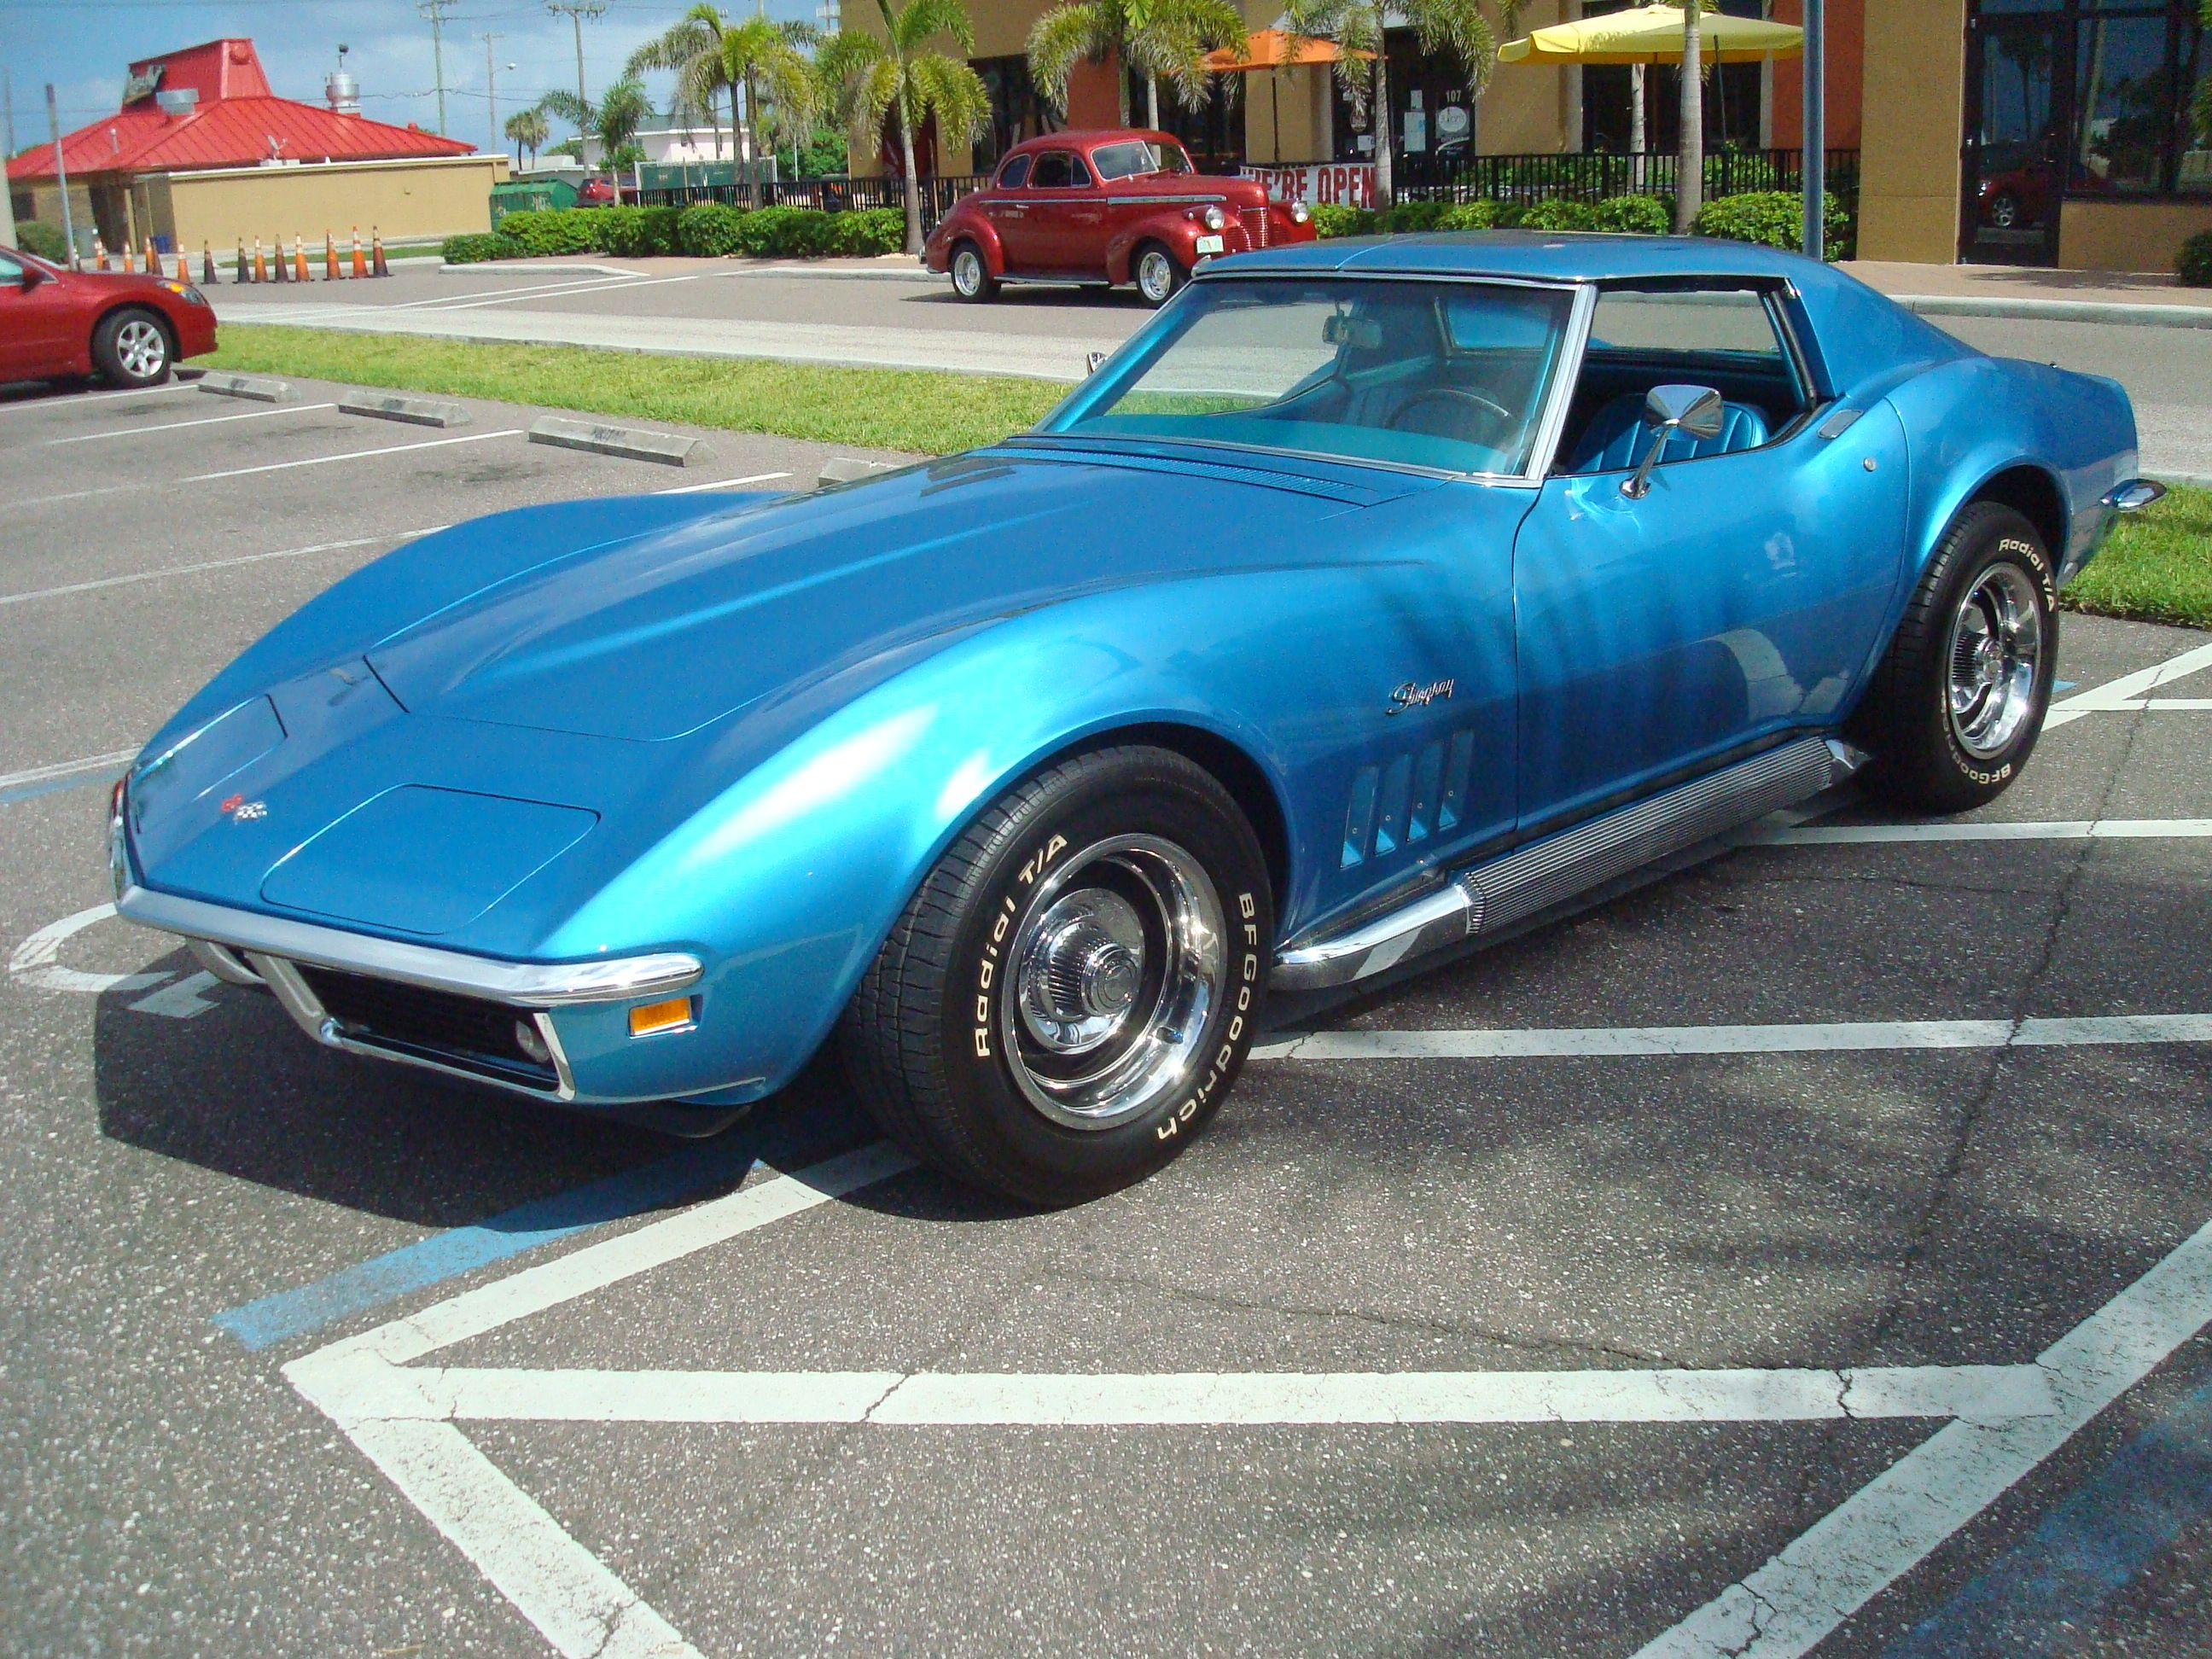 Adapter Tachometerspeedometer Cable 90 Degree Fitting 63 74 likewise Blog Entry 6419 as well 1965YelCorvConvert moreover Corvette Stingray Blue 1969 also Stingray. on 1963 corvette stingray